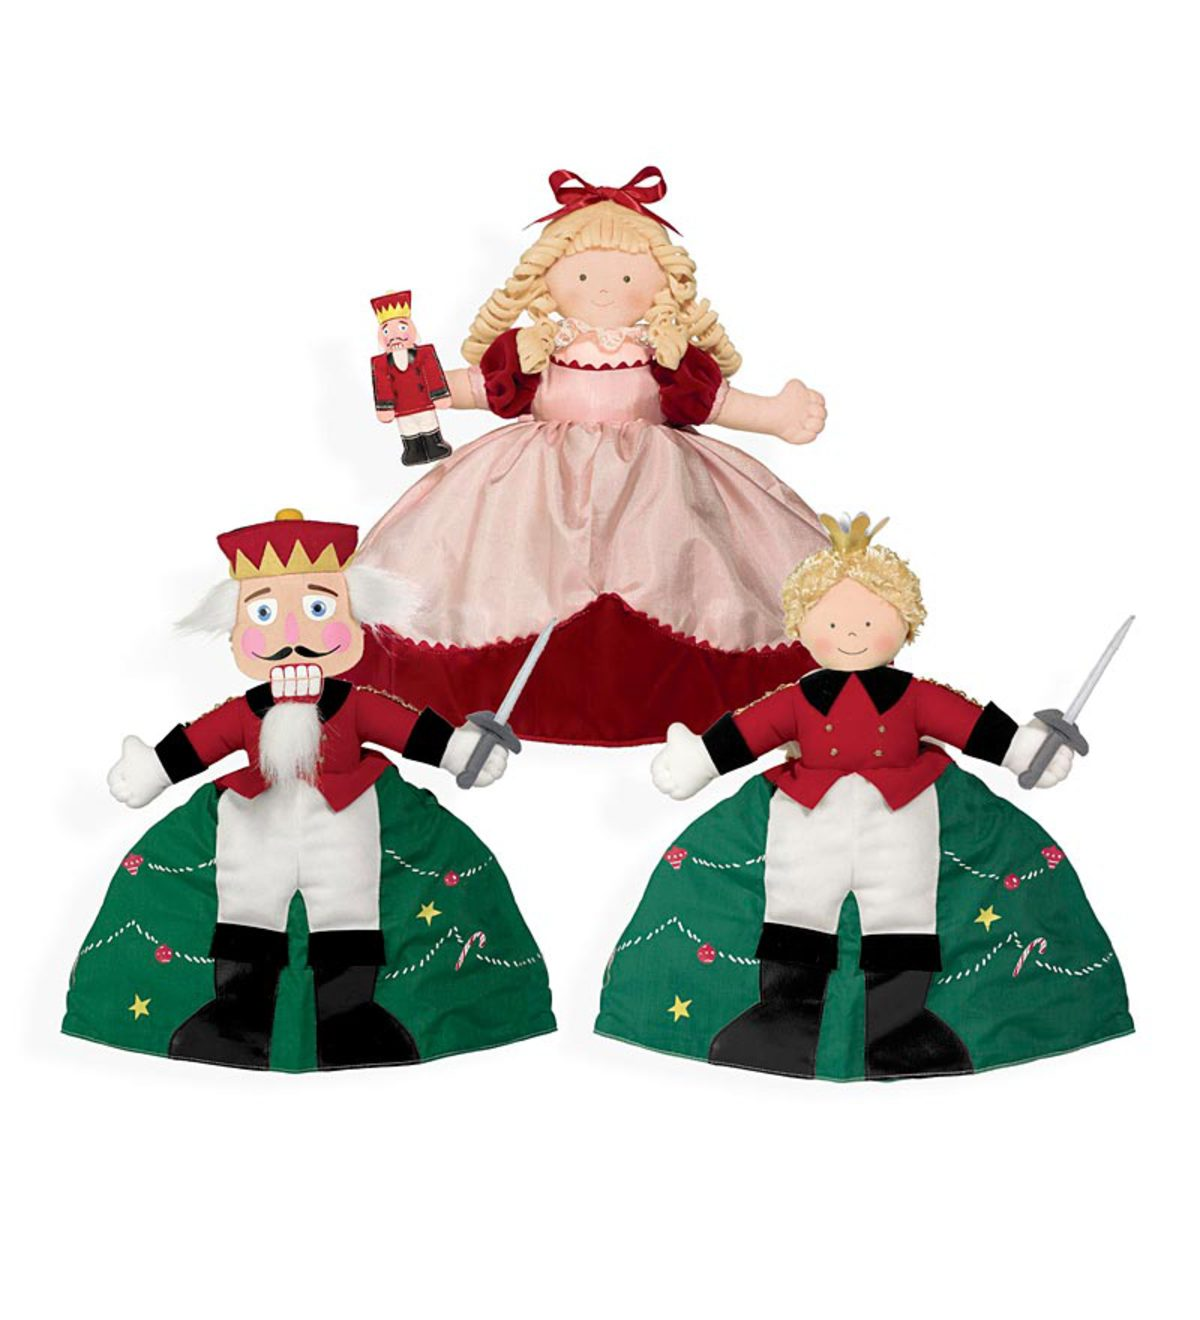 Nutcracker Prince and Clara Topsy Turvy Reversible Plush Doll